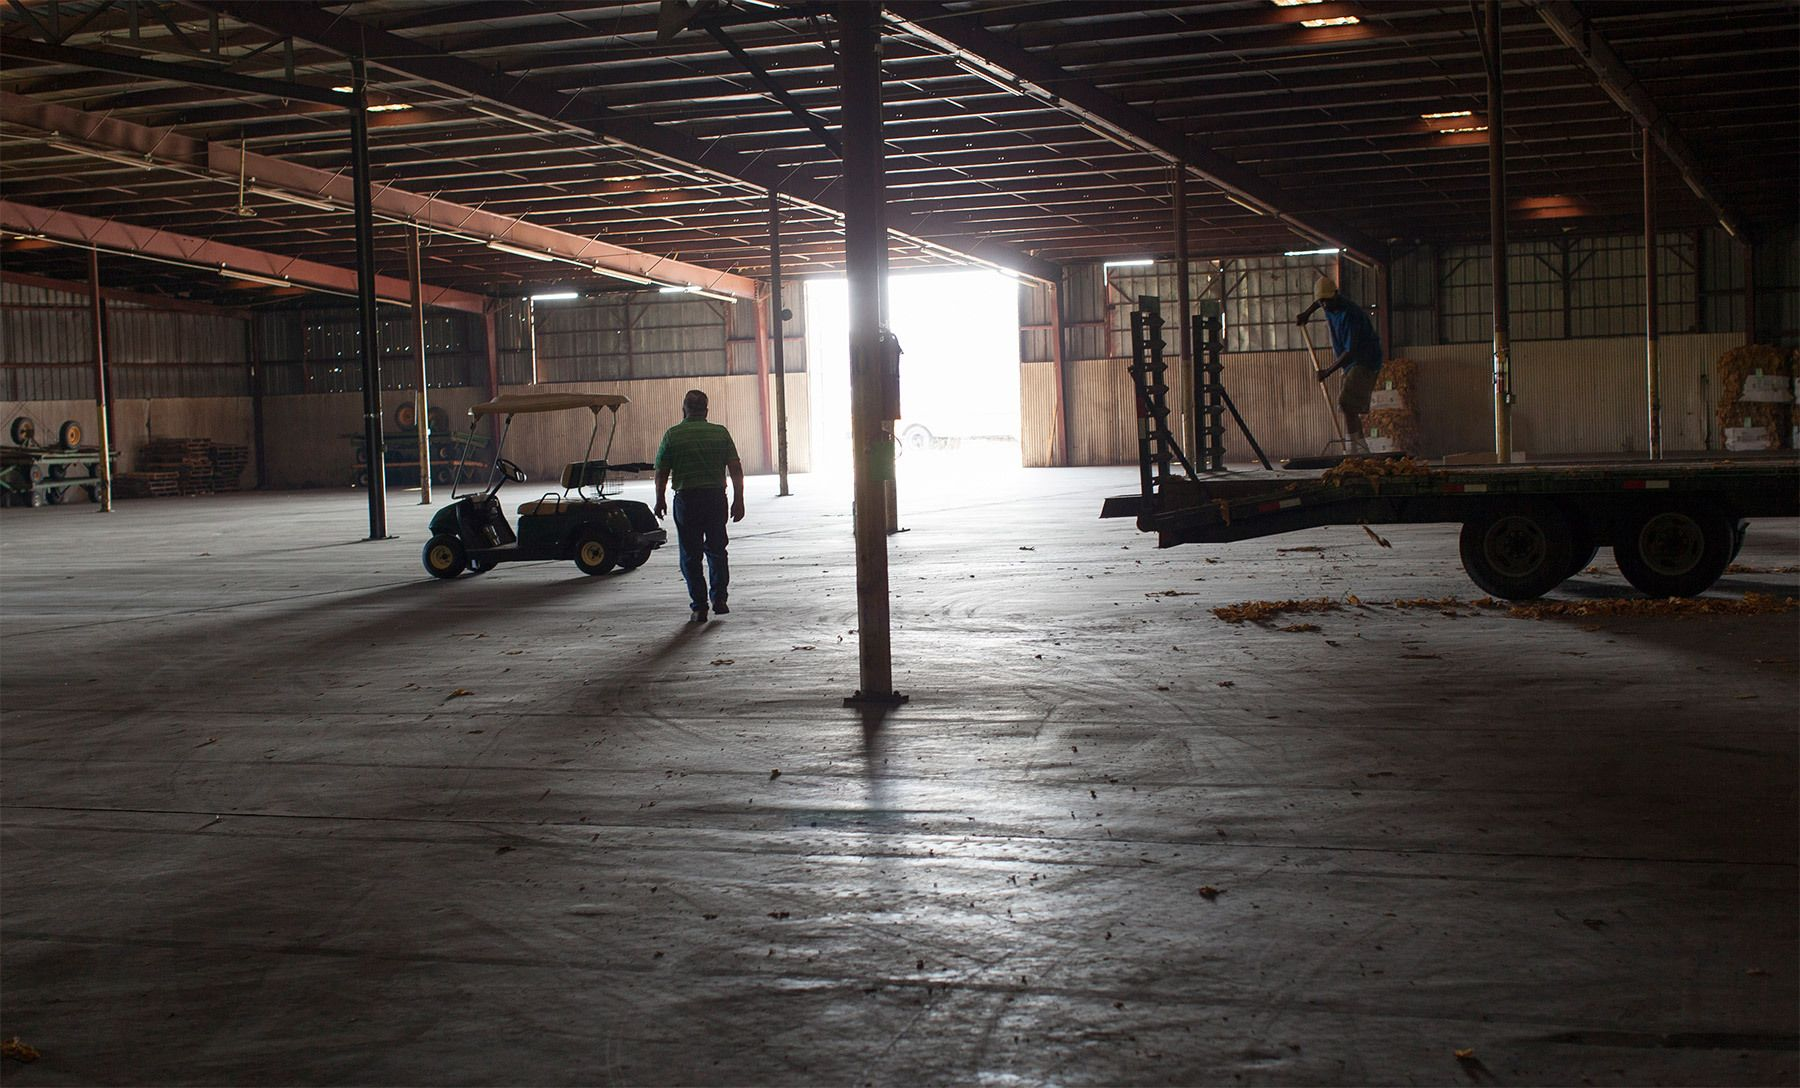 A day before the markets open, workers prepare the Big L Warehouse for opening in Mullins, South Carolina July 26, 2013. The warehouse is co-owned by Shelly but leased to the US Tobacco Cooperative during harvest. The cooperative sets the standard for pricing and quality of the farmer's crop. The traditional tobacco harvest requires many labor intensive hours to bring the crop to market, especially with the flue-cured variety prominent in the southern United States. With the growing health concerns with smoking in the US, most farmers use market cooperatives to sell their crop to the growing markets in China.      Picture taken on July 26, 2013.   REUTERS/Randall Hill (UNITED STATES)